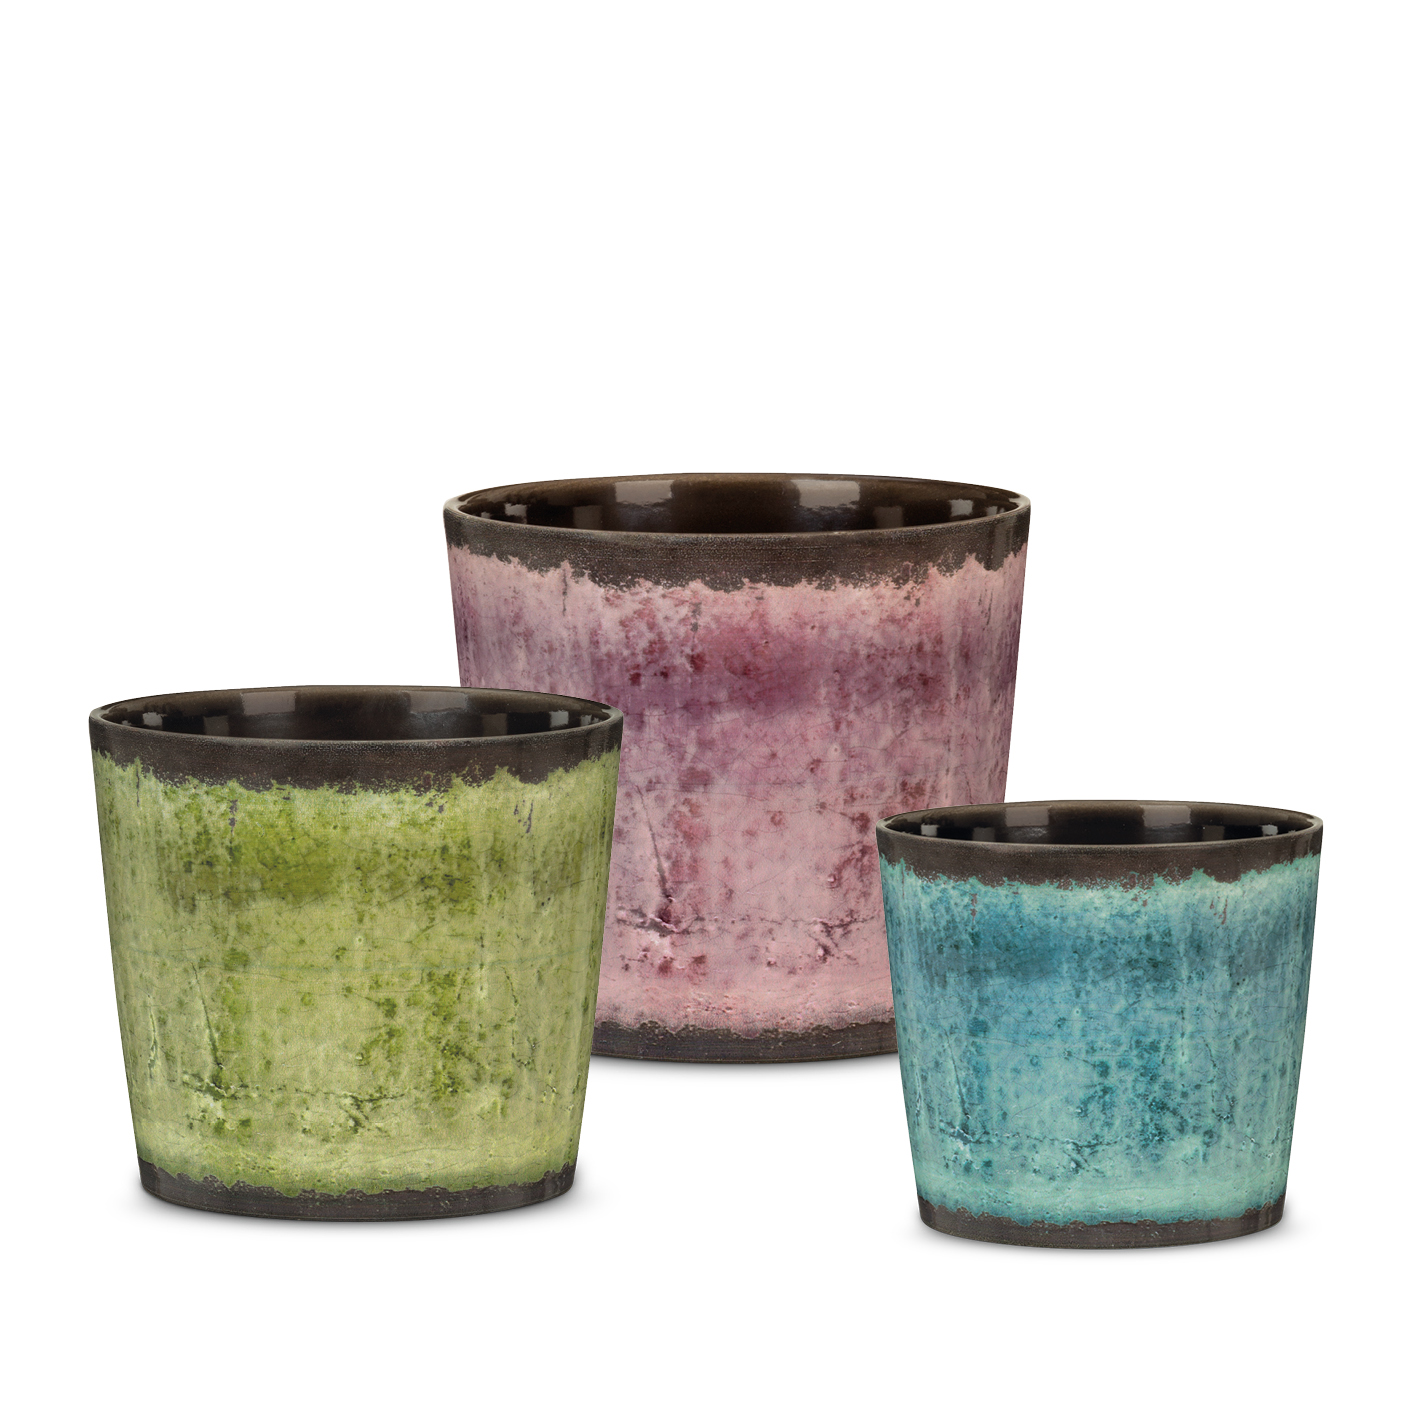 Tradition range: Meadow Glaze, Malva Glaze and Ocean Glaze